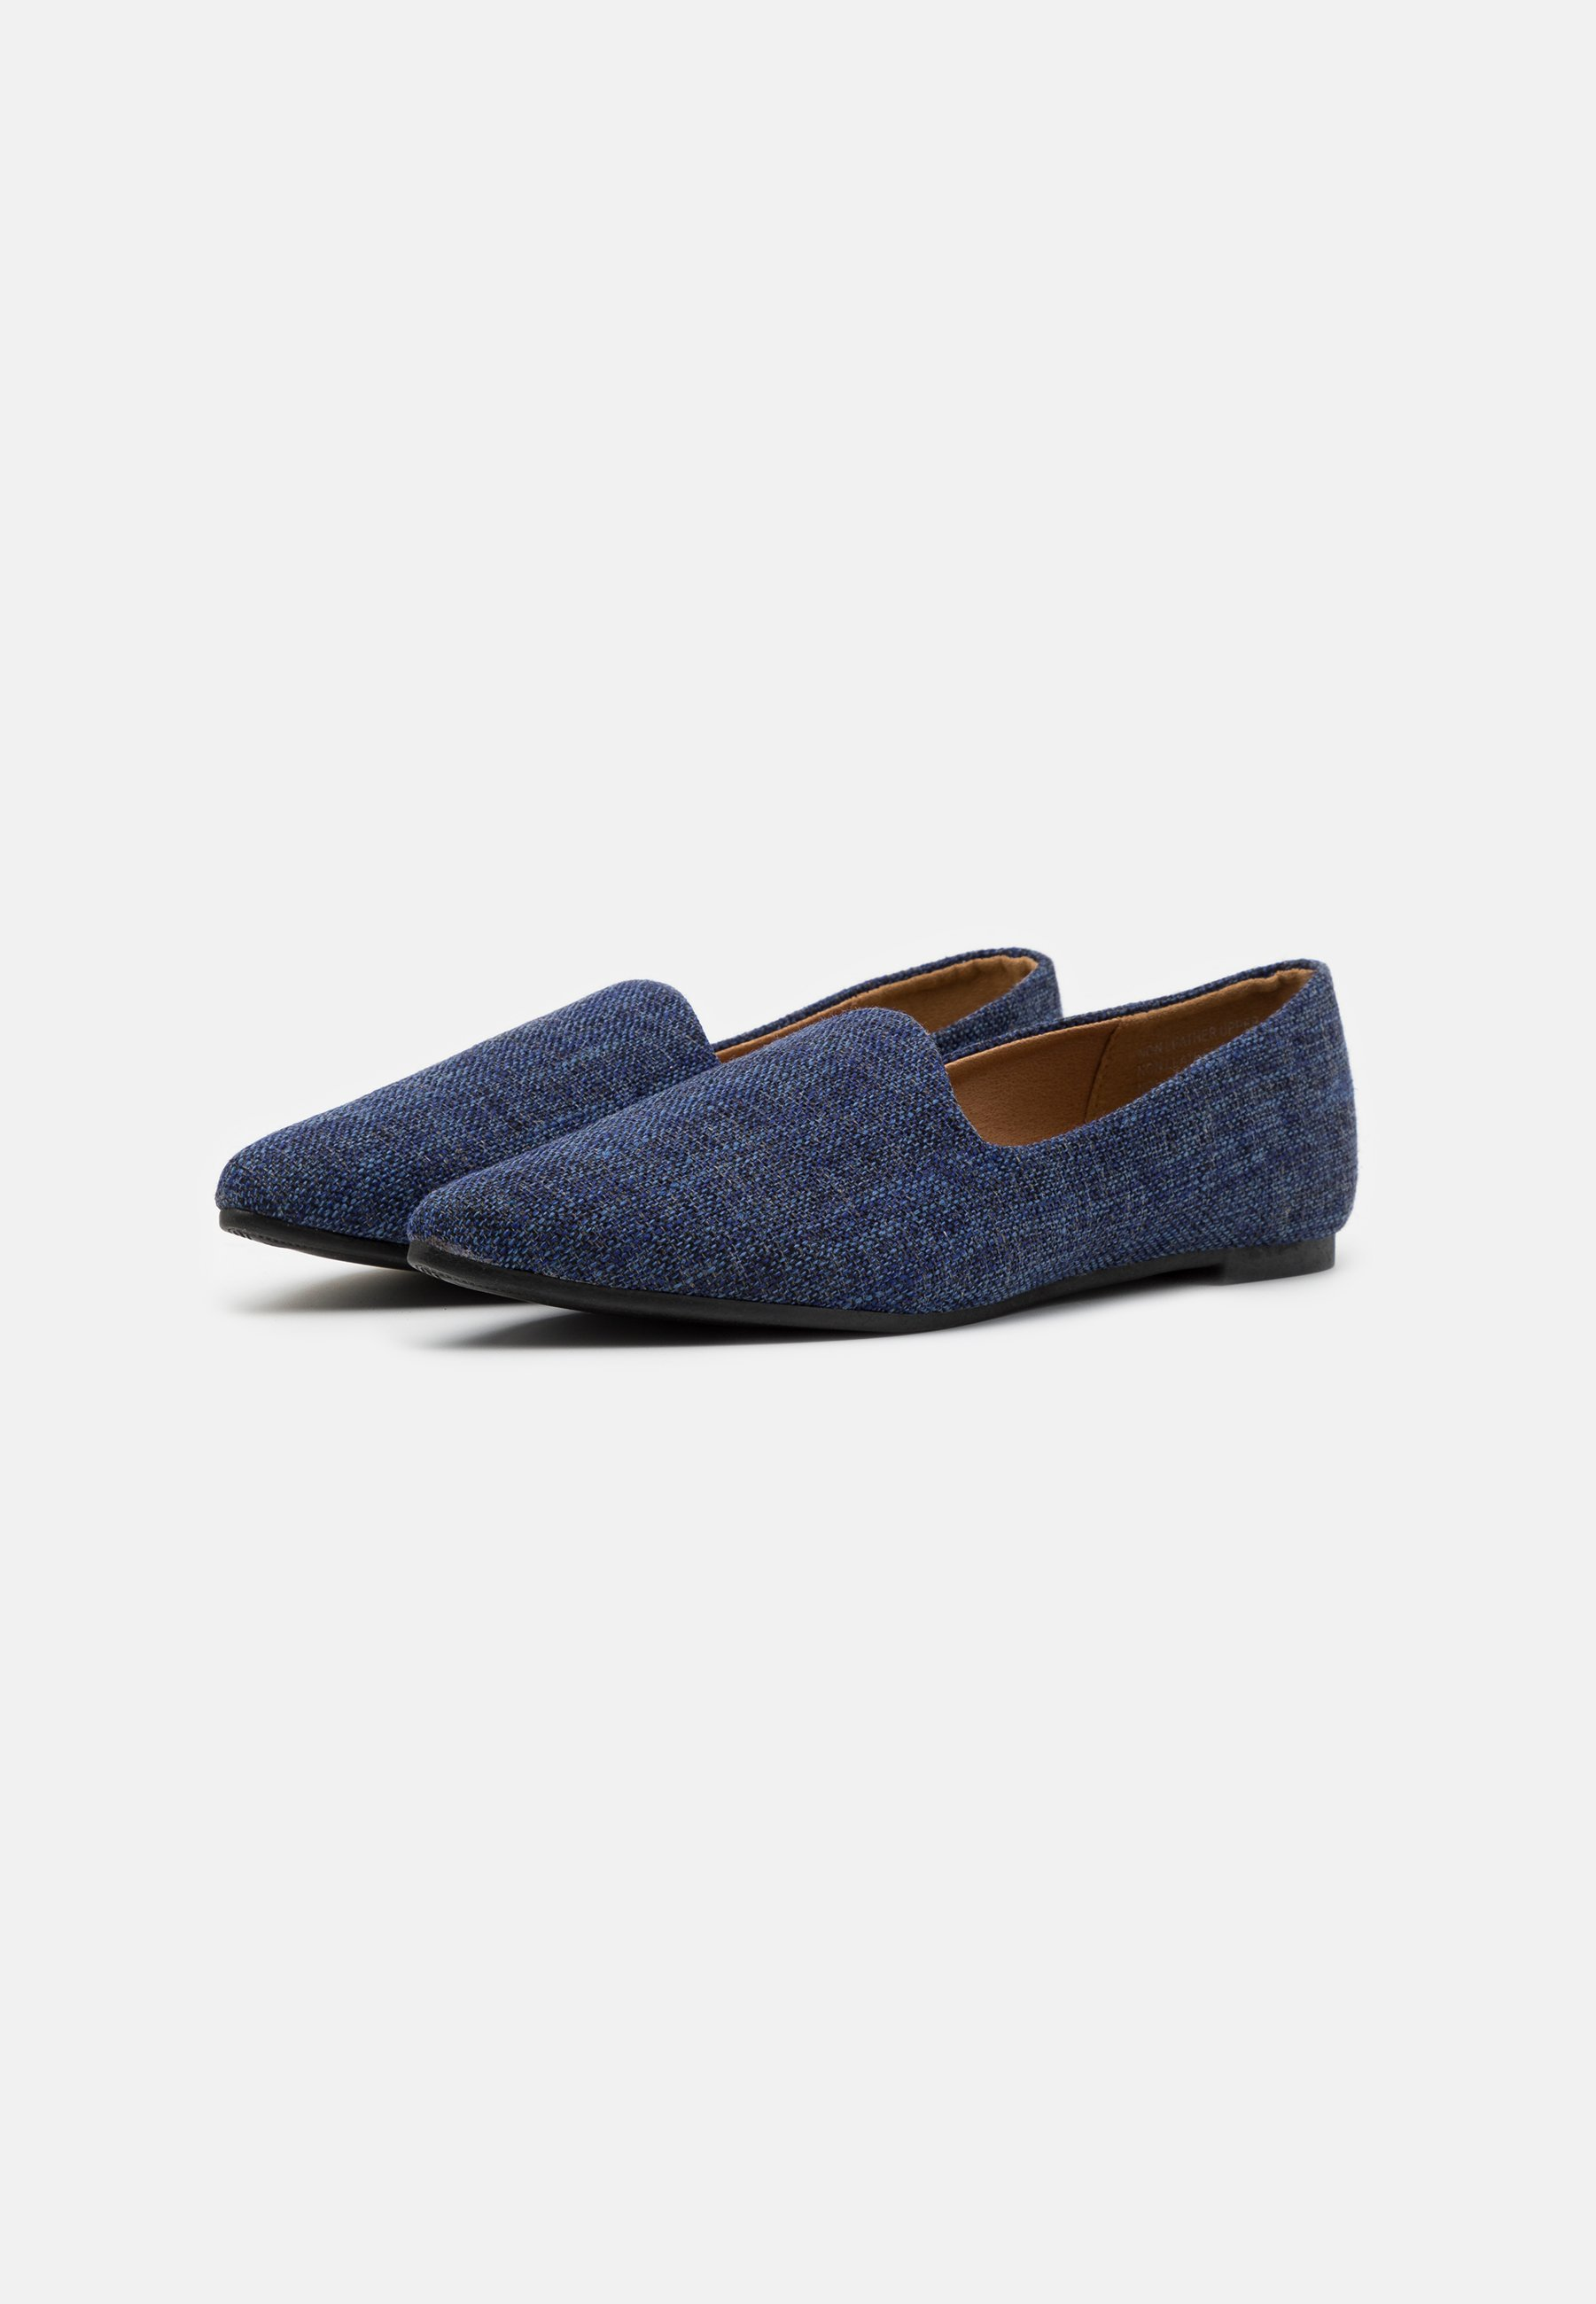 Rubi Shoes By Cotton On Essential Tiana - Loafers Navy